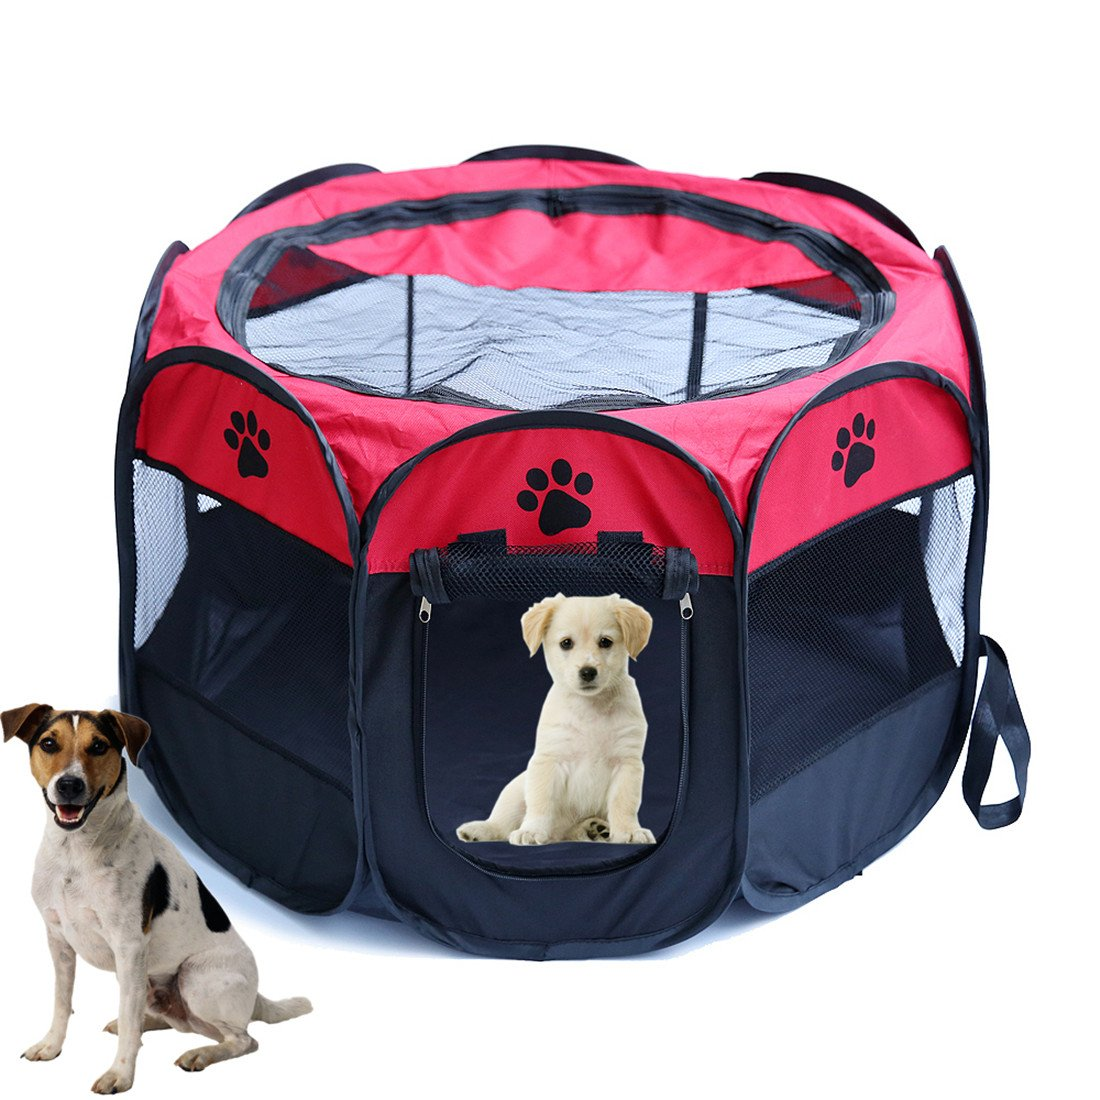 Red Large Red Large Zenol Pet Playpens for Dog Cat Puppy Exercise Kennel For Small 45  Medium 56 , Indoor And Outdoor Playpen. With Carry Bag. Easily To Sets Up, Foldable, Portable and Space Free (Large, Red)